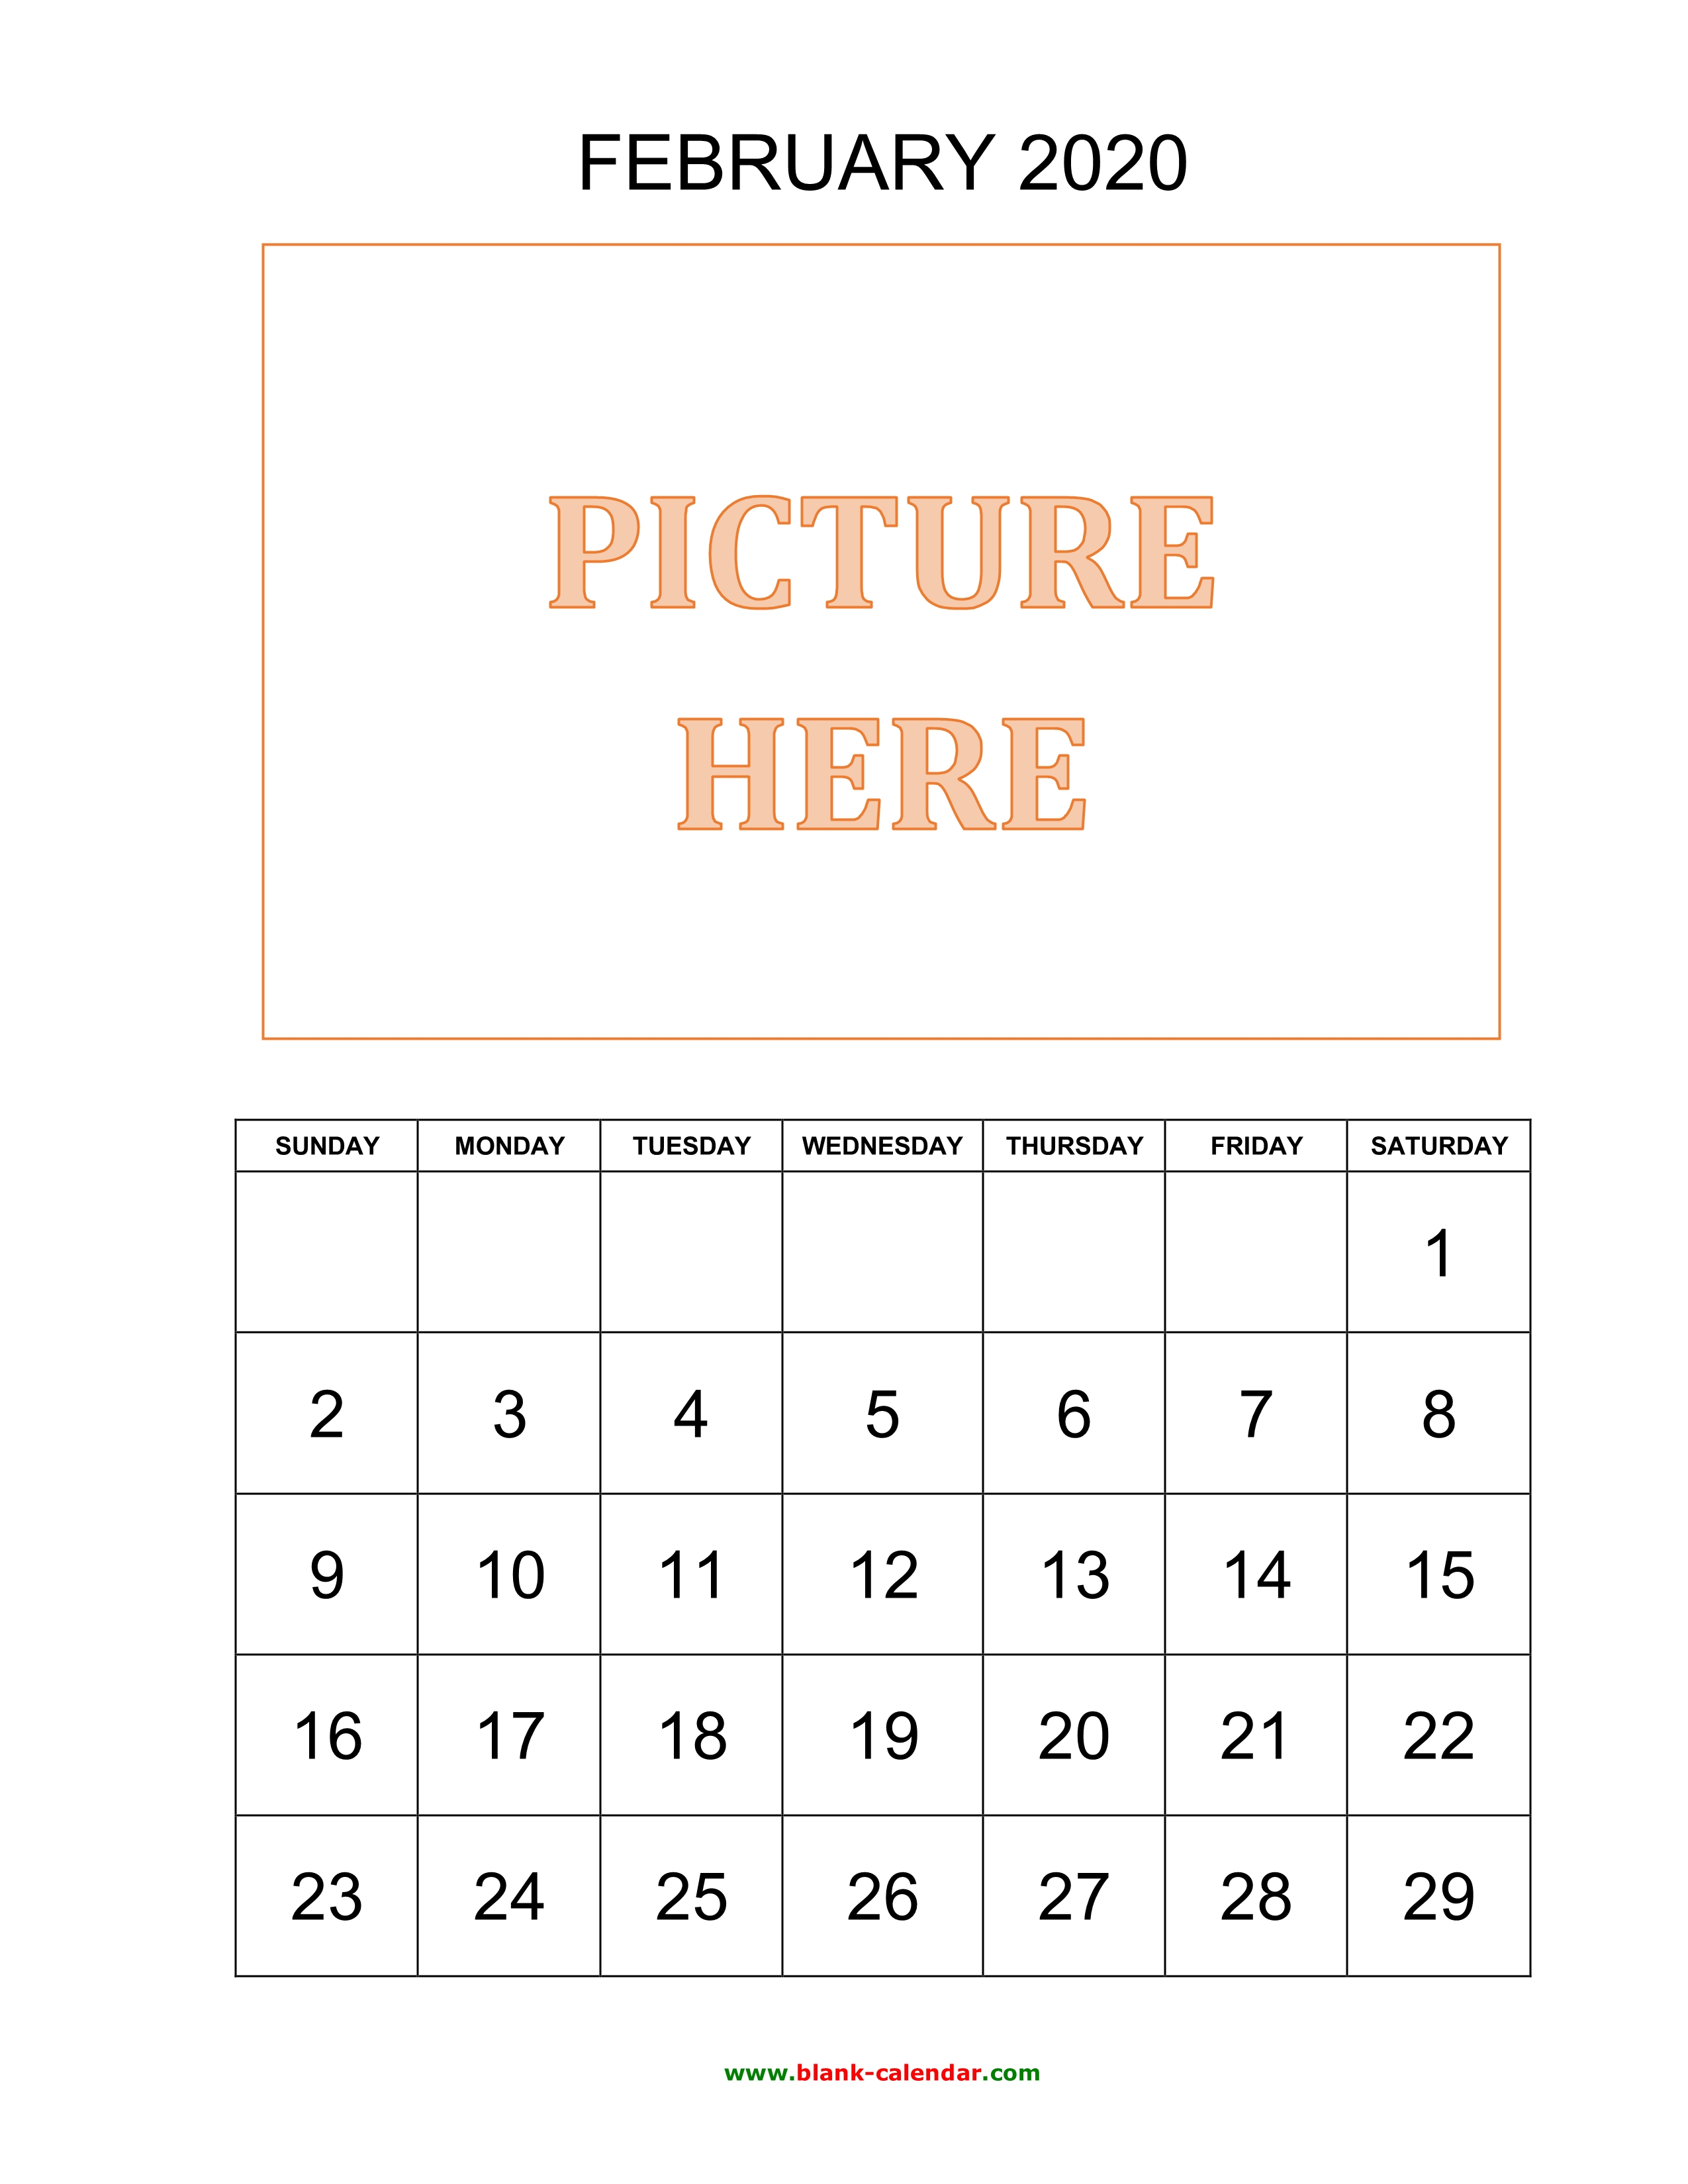 February 2020 Print-A Calendarcom Free Download Printable February 2020 Calendar, pictures can be